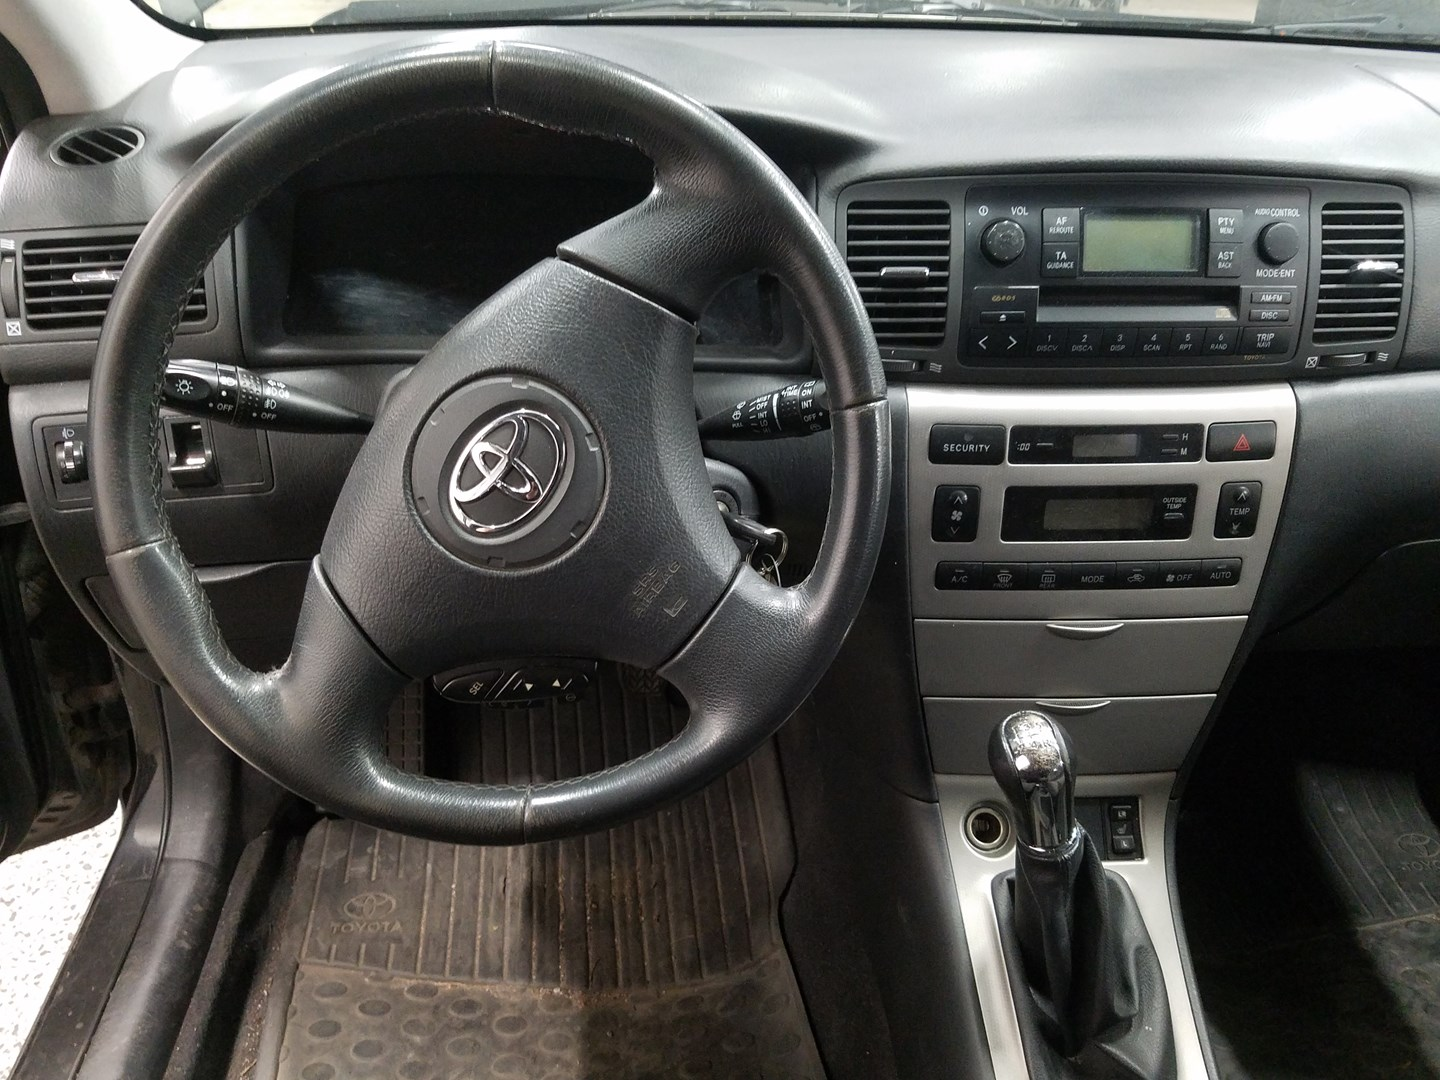 Photos for 2003 TOYOTA COROLLA | Auction at Espoo on Tuesday, August 11,  2020 - Copart Finland